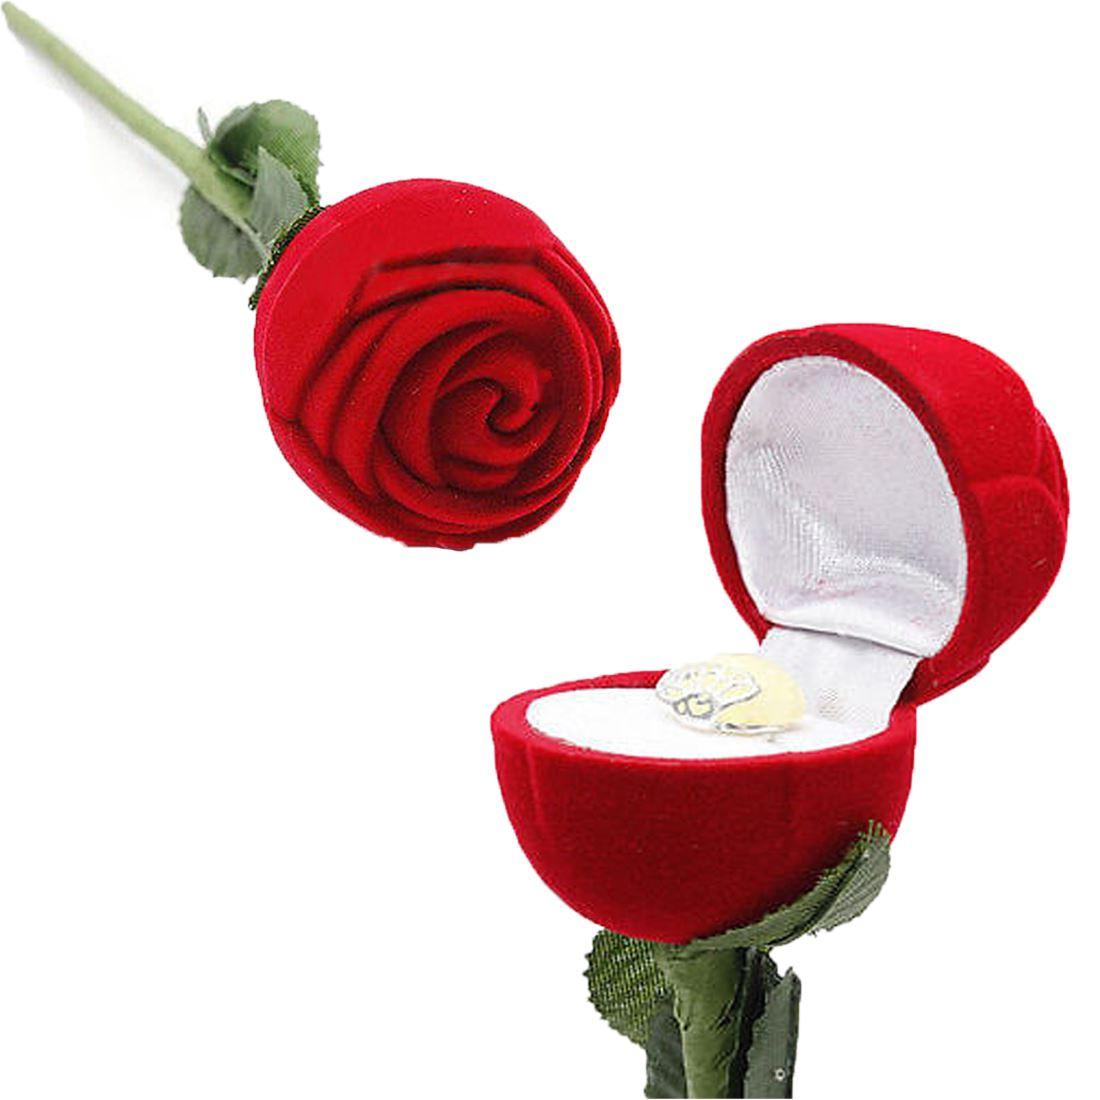 Online Cheap New Elegant Fashion Red Rose Flower Jewelry Gift Ring.